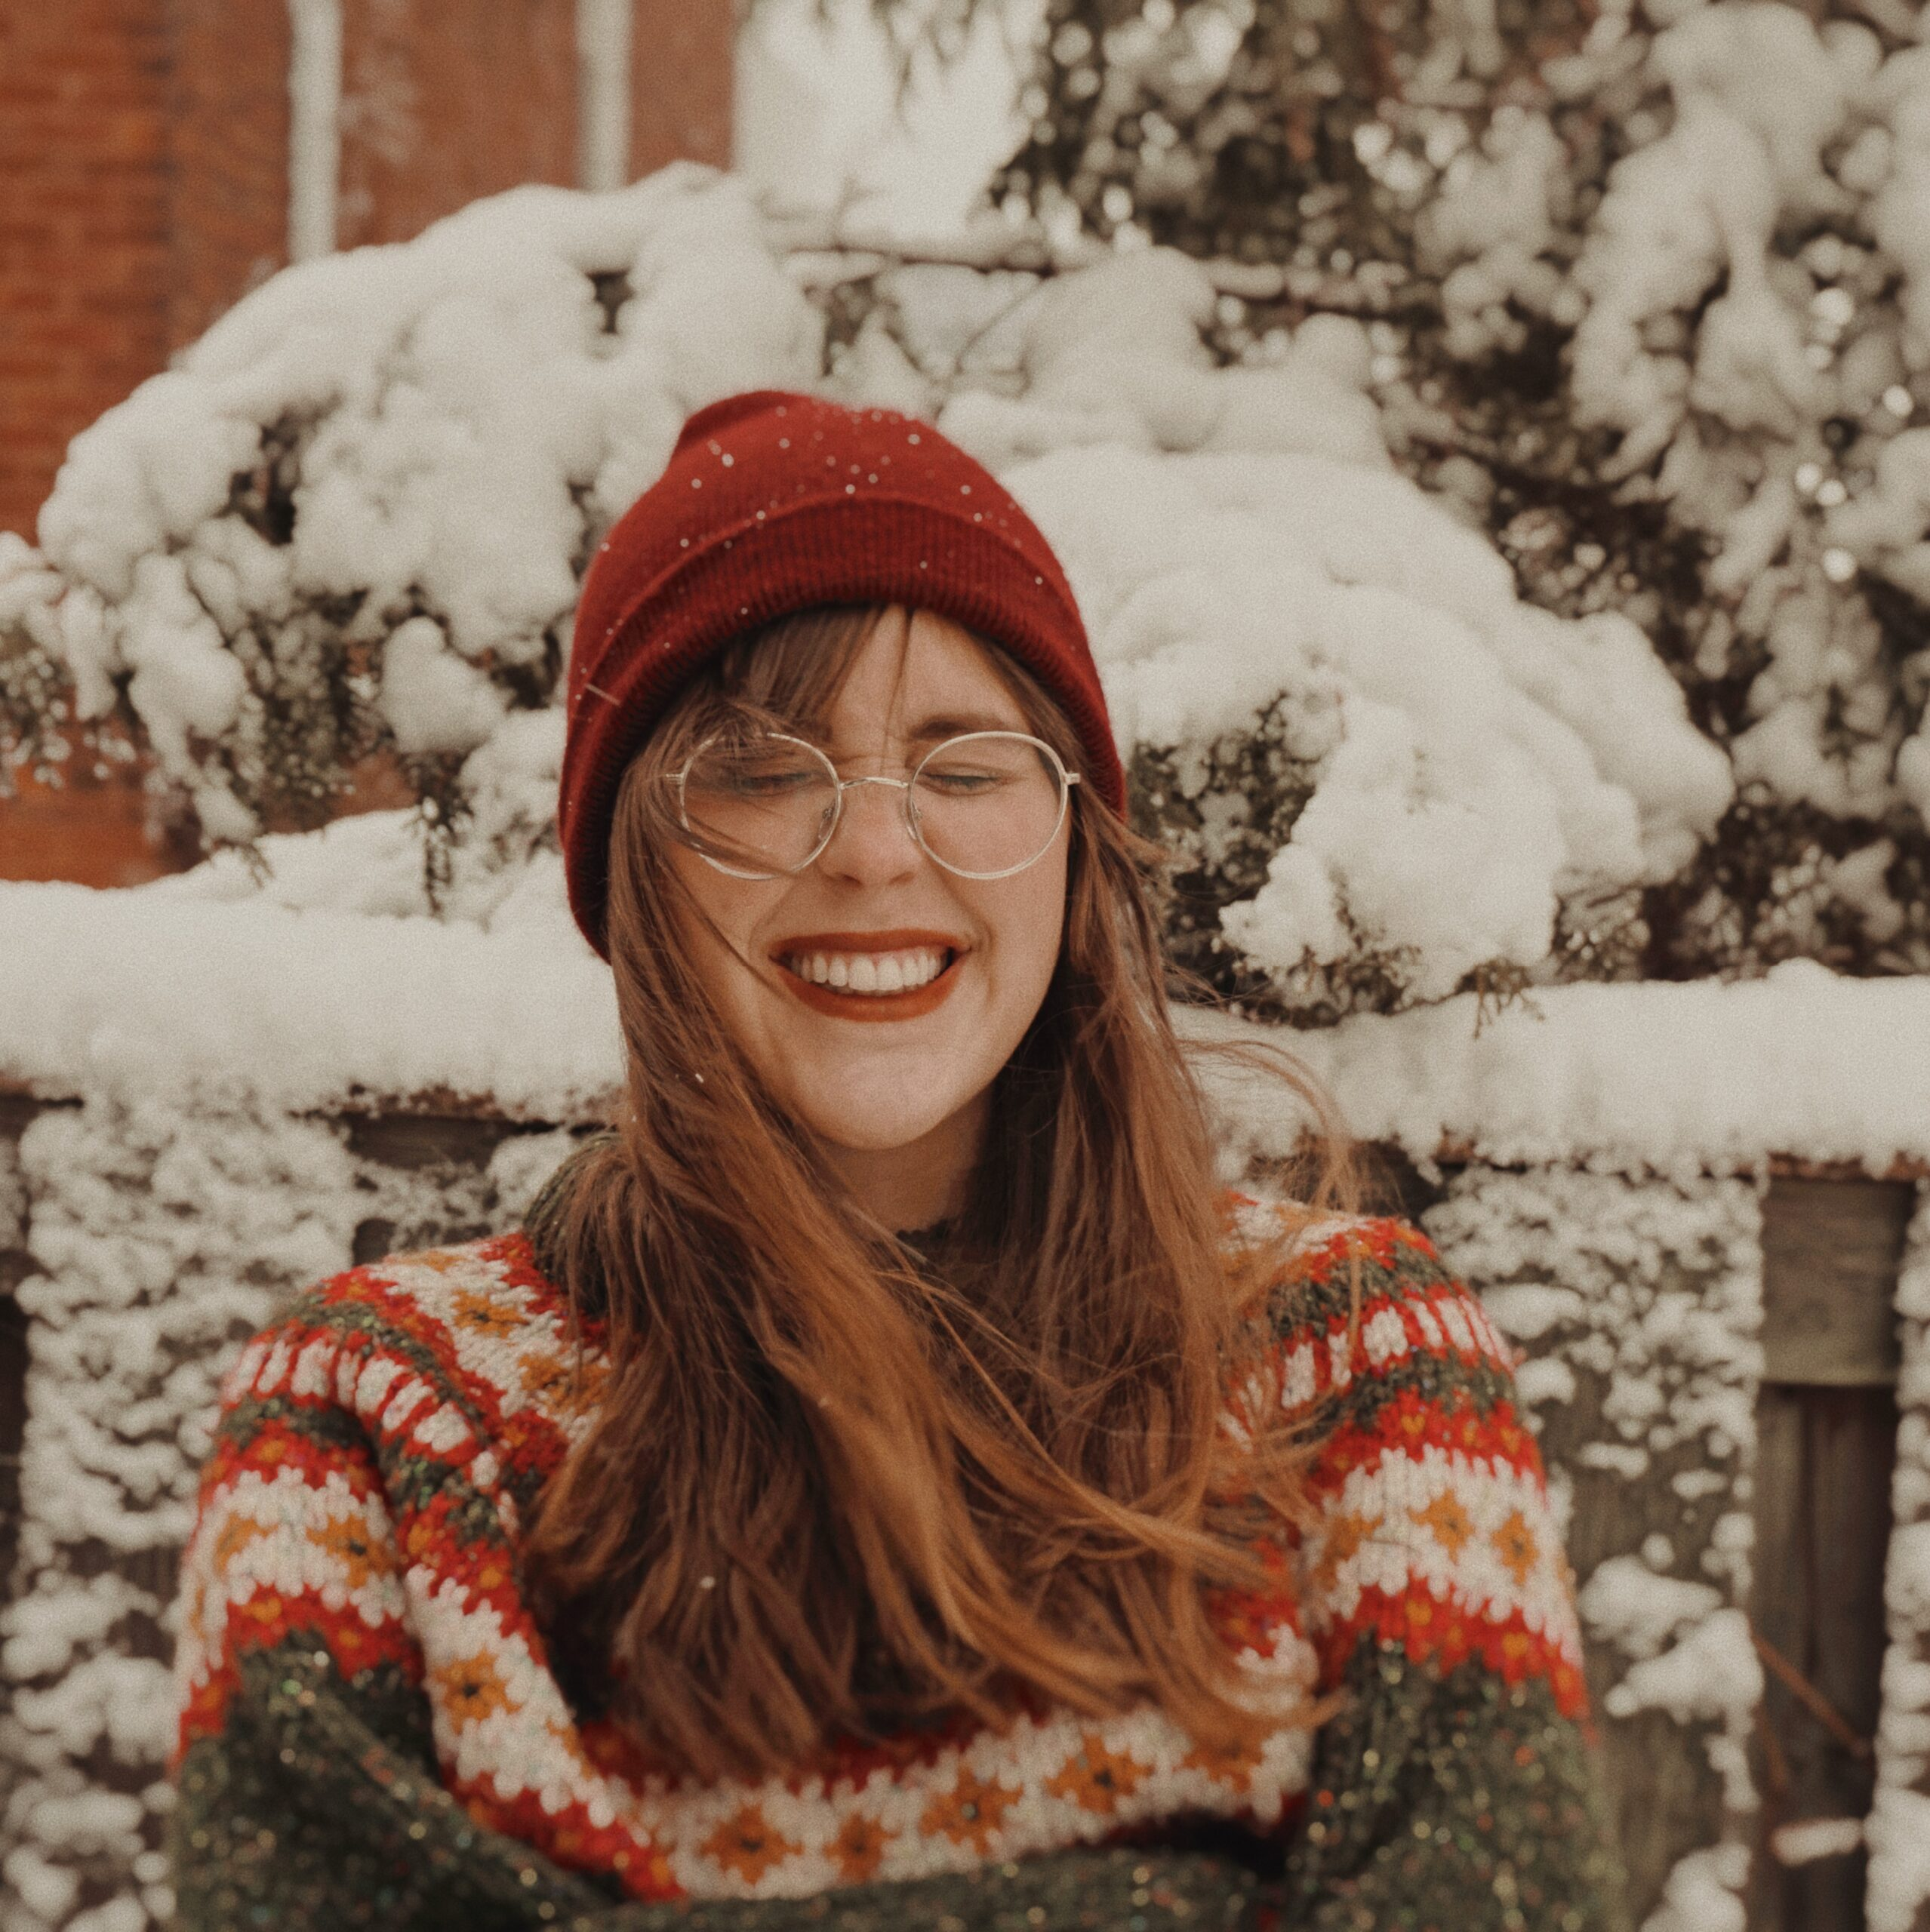 A smiling girl wears a red beanie hat and nordic style knit jumper in front of a snowy fence.